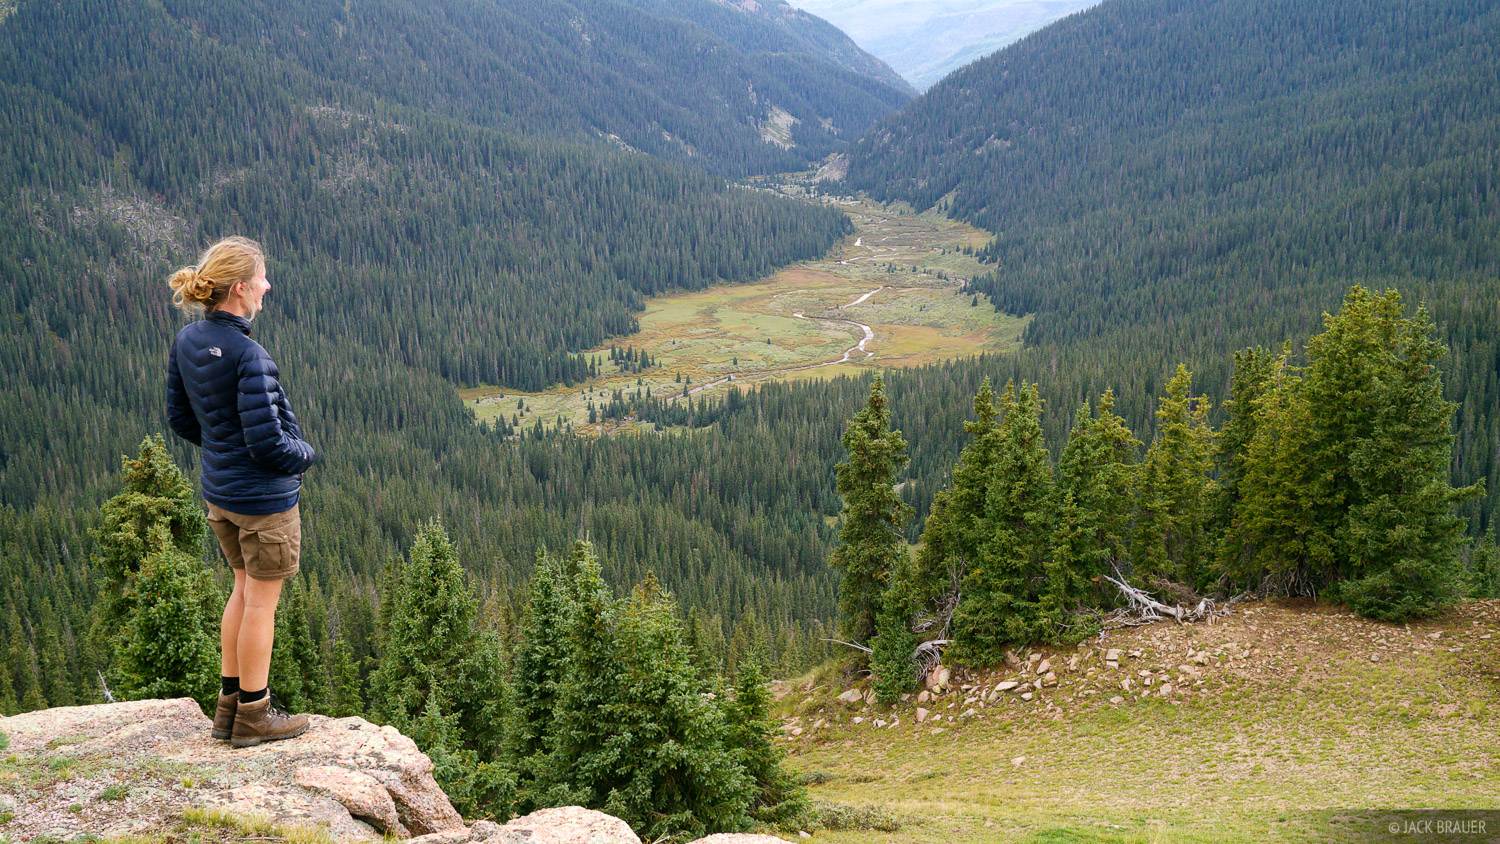 Colorado, San Juan Mountains, Weminuche Wilderness, photo